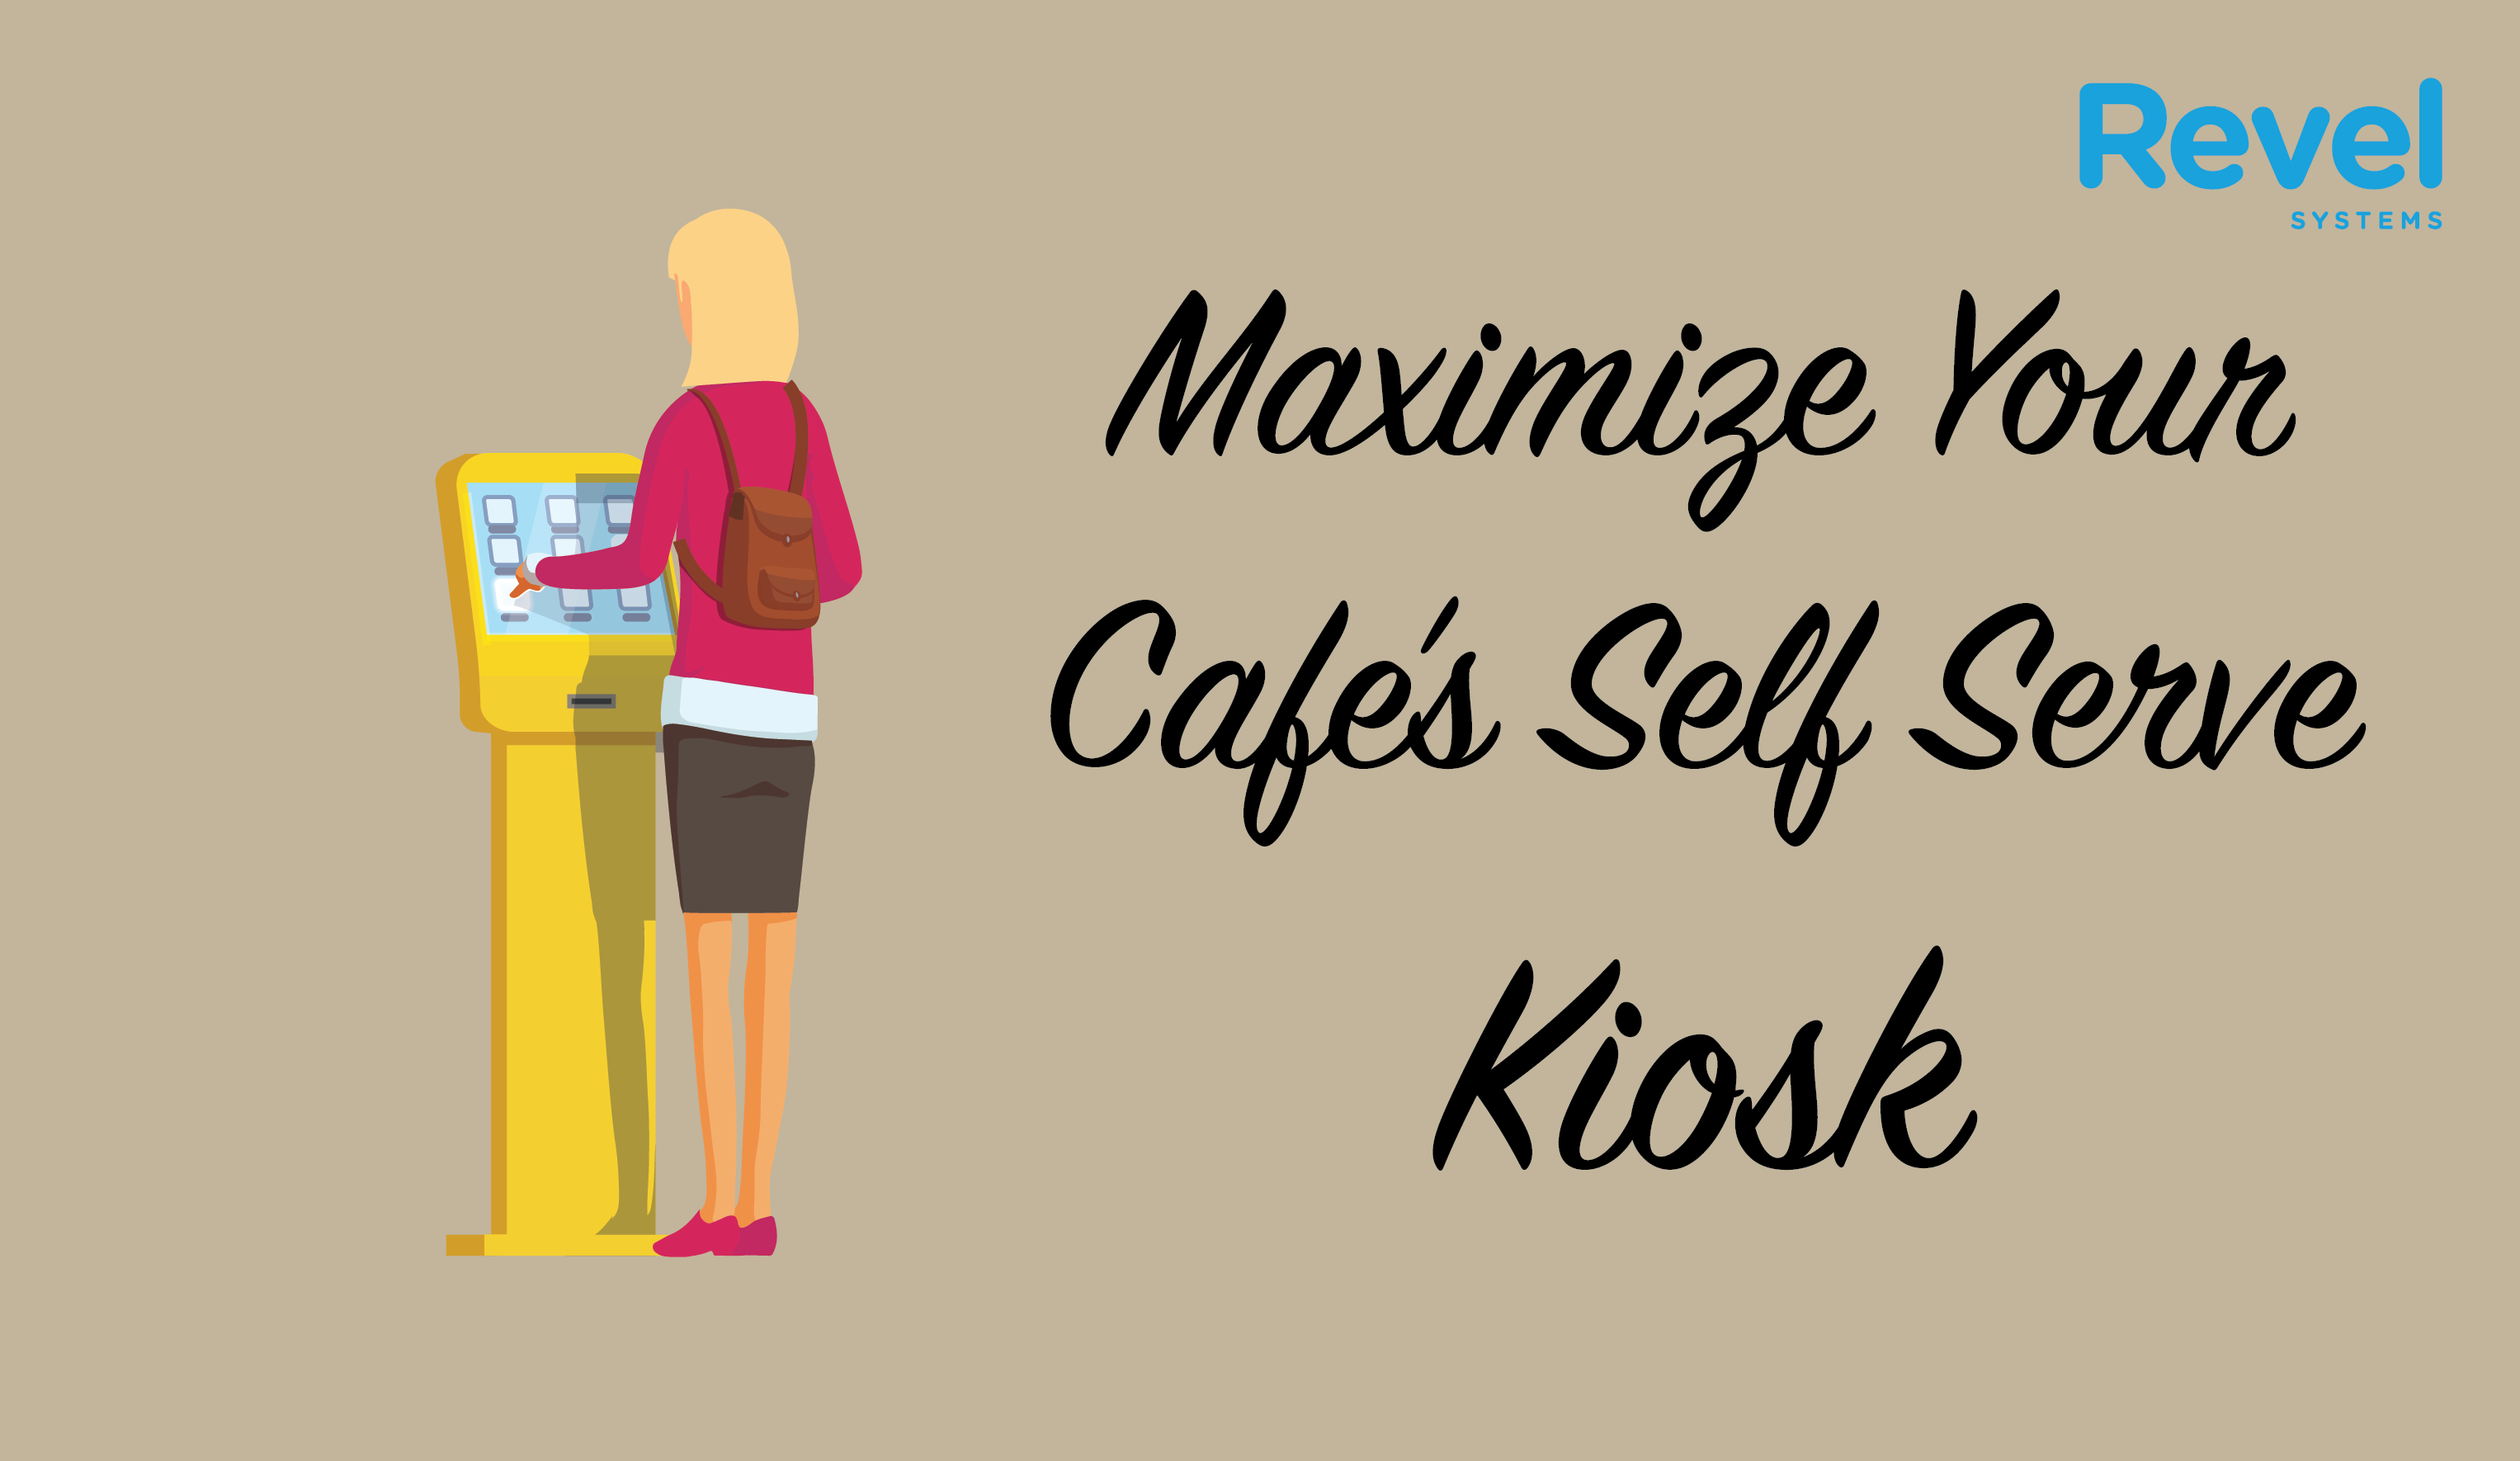 3 Ways to Maximize Your Cafe's Self Serve Kiosk